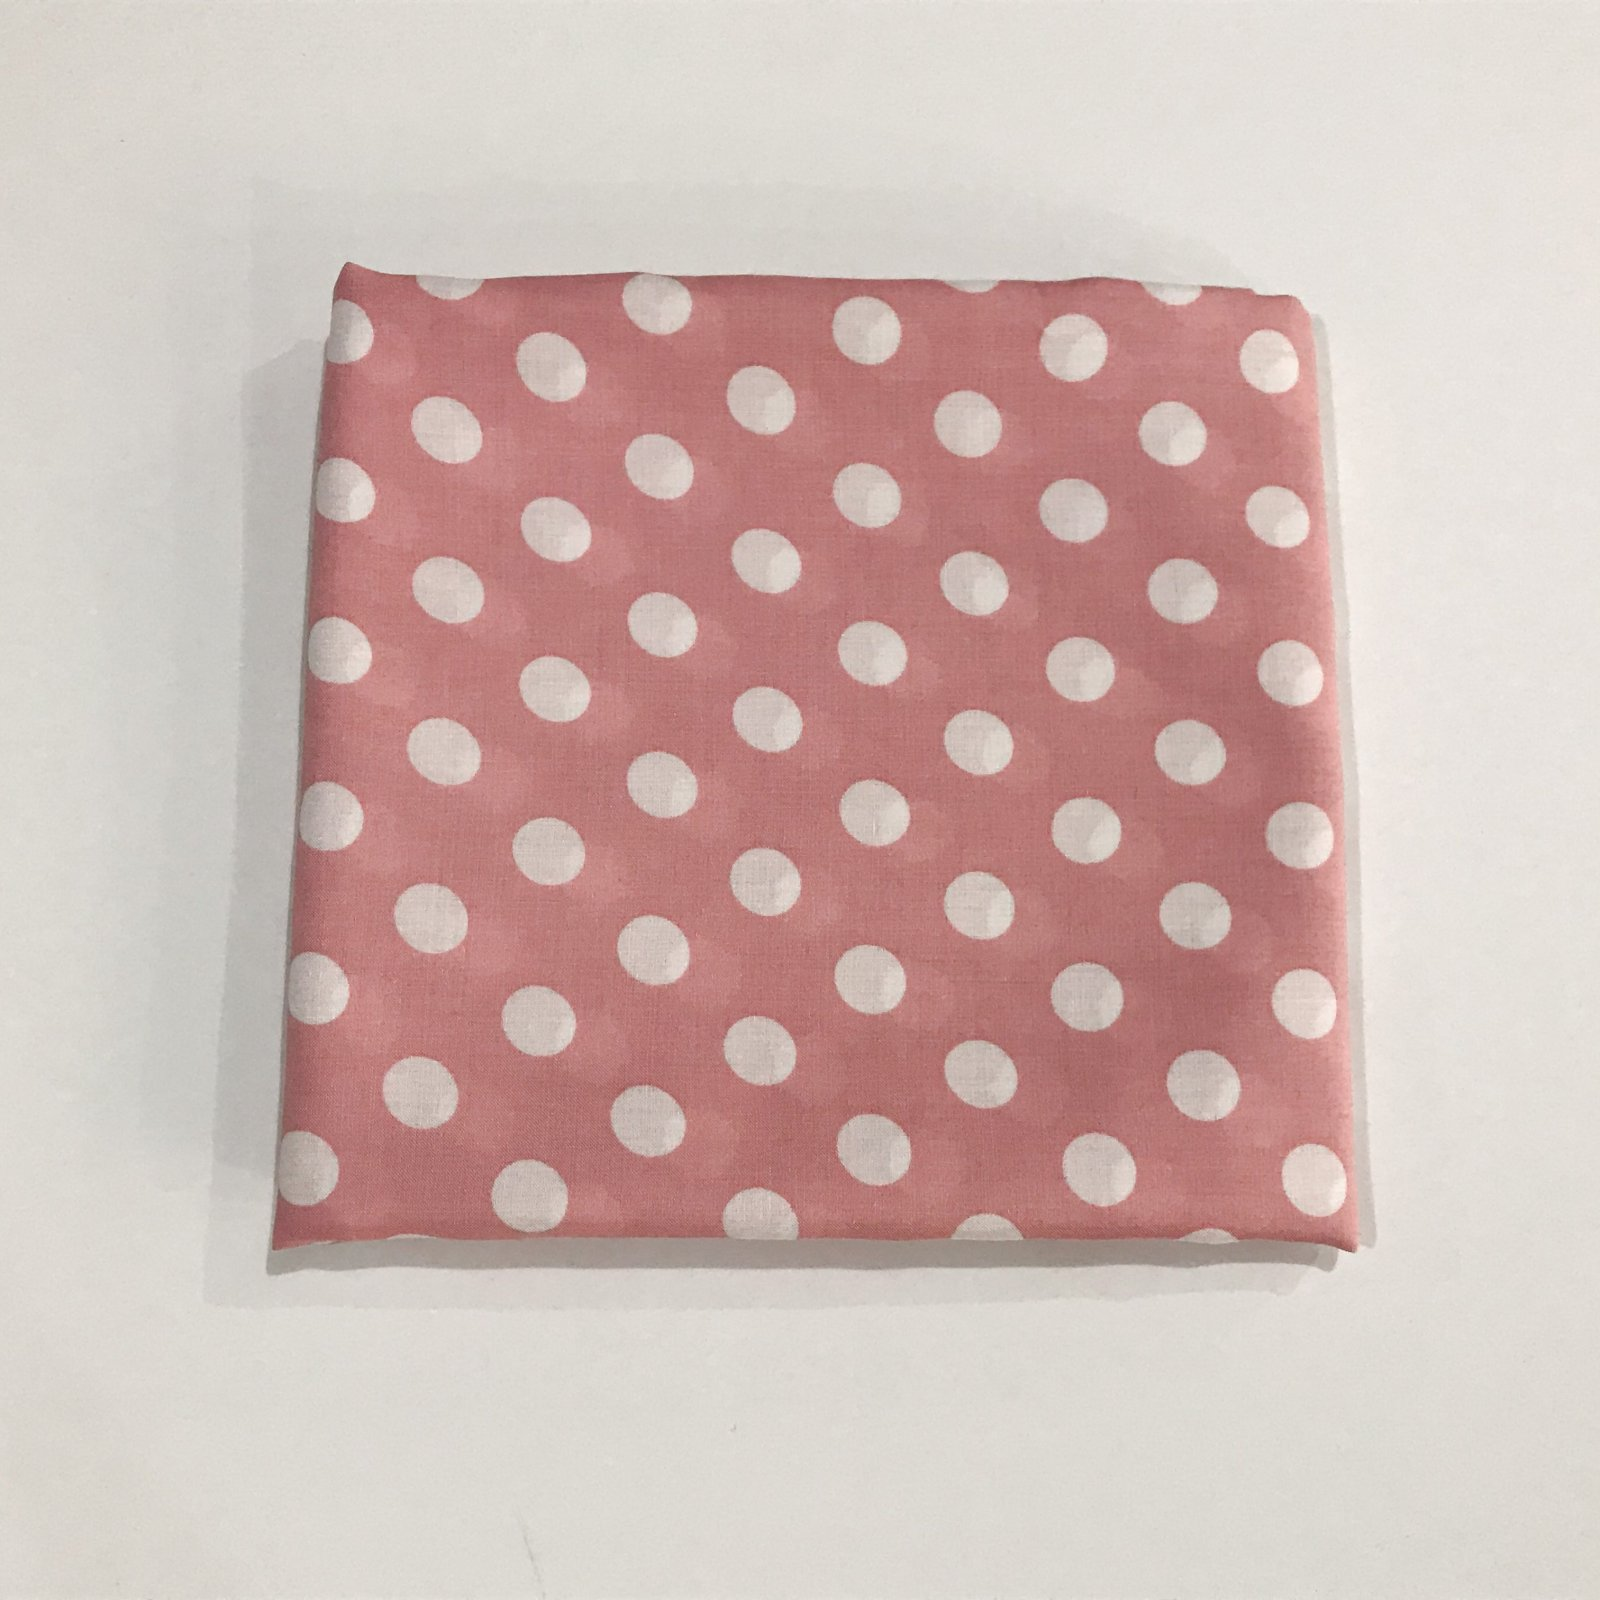 1 3/4 yards - Rayon - White Polka Dots on Pink